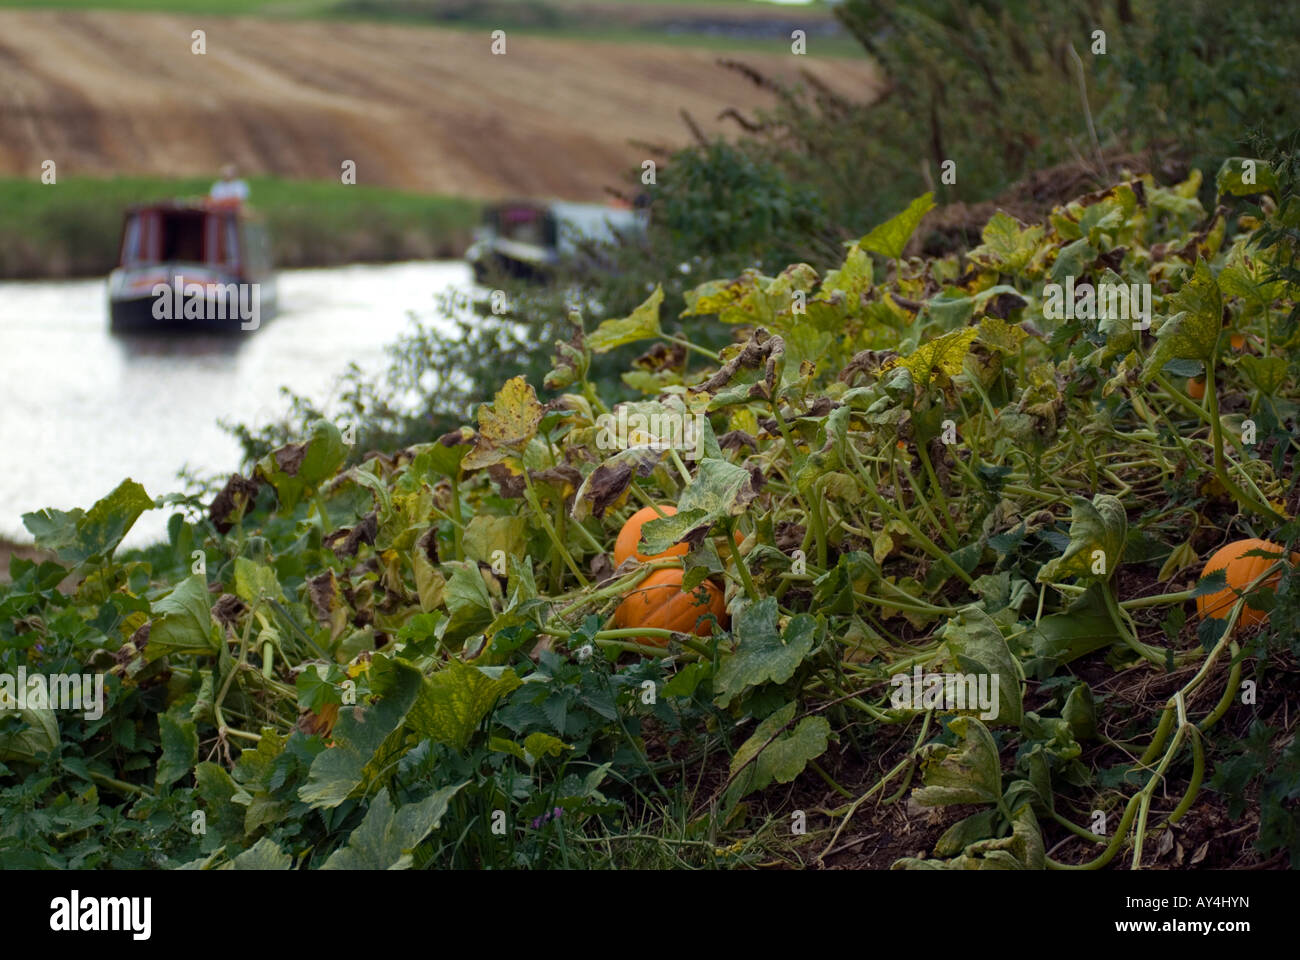 Wild pumpkins growing by the side of the Grand Union canal two narrowboats navigating in the distance - Stock Image